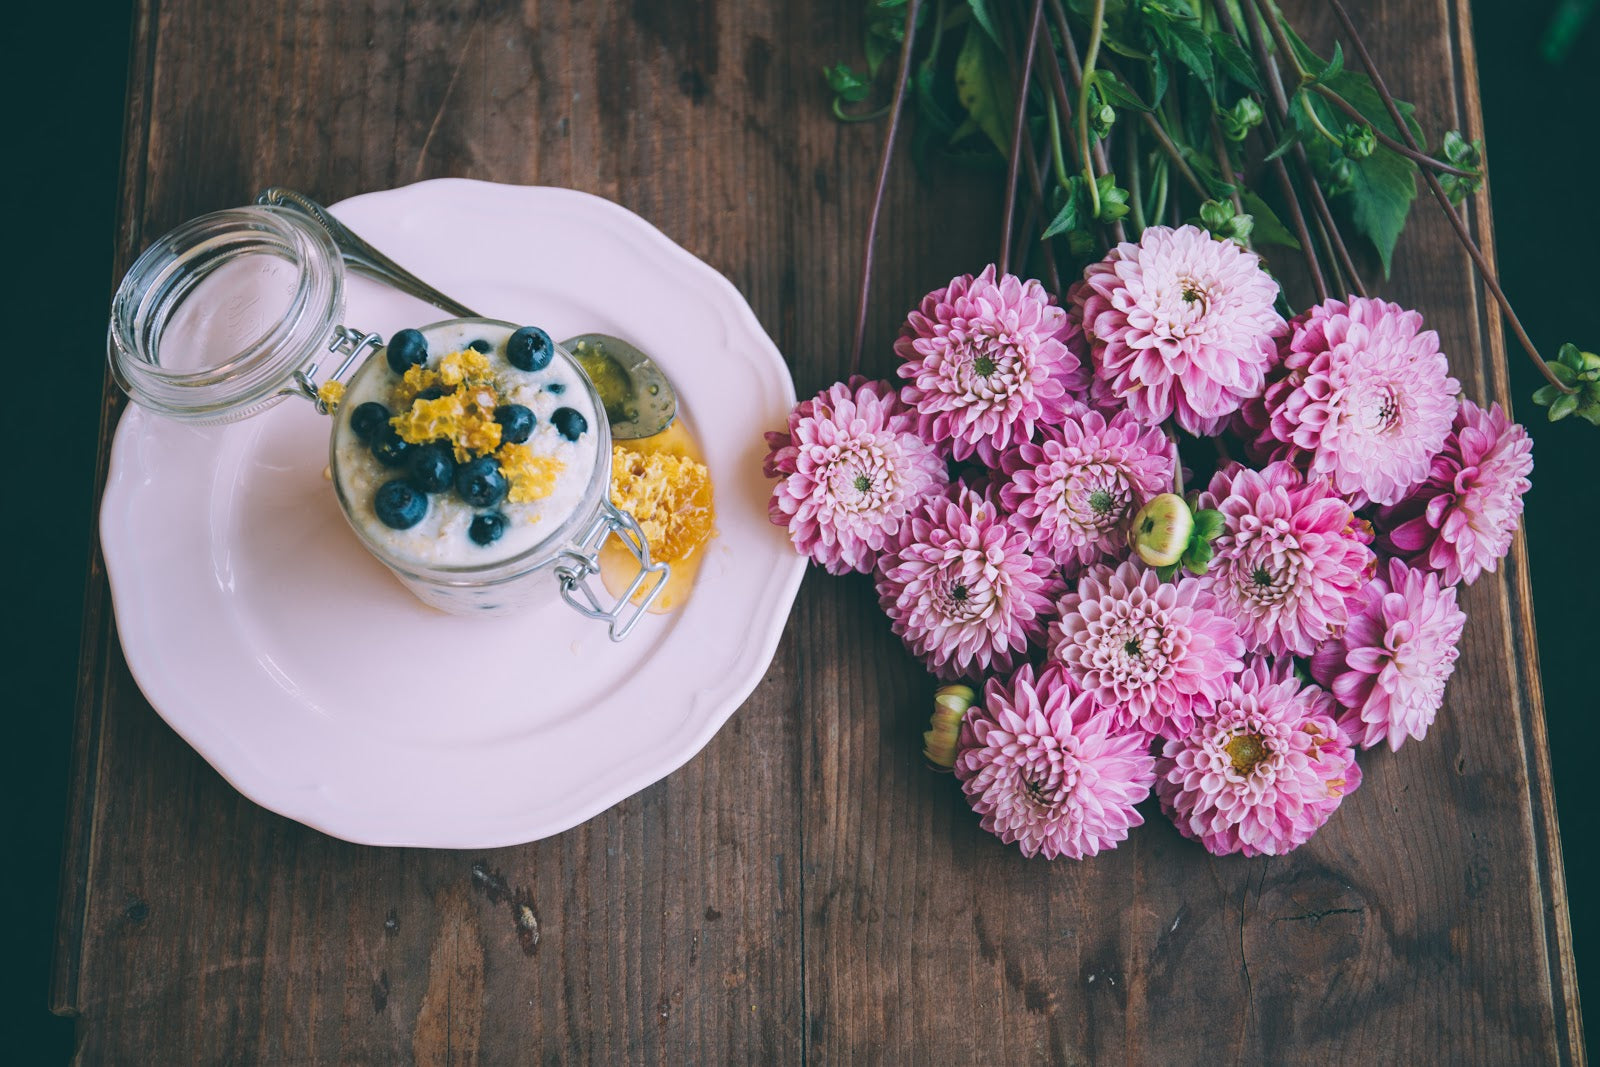 A mason jar of kefir yogurt surrounded by flowers